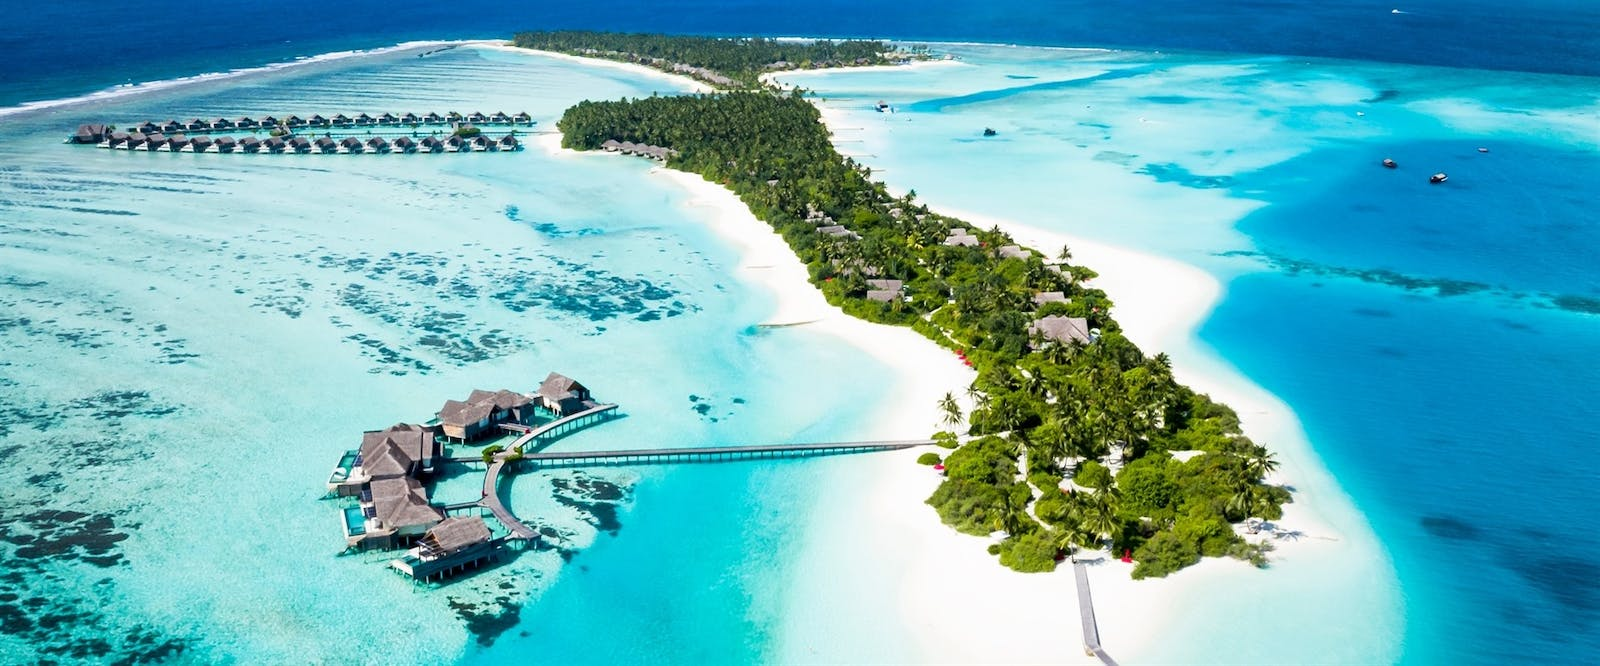 Aerial View of Niyama Private Islands, Maldives, Indian Ocean